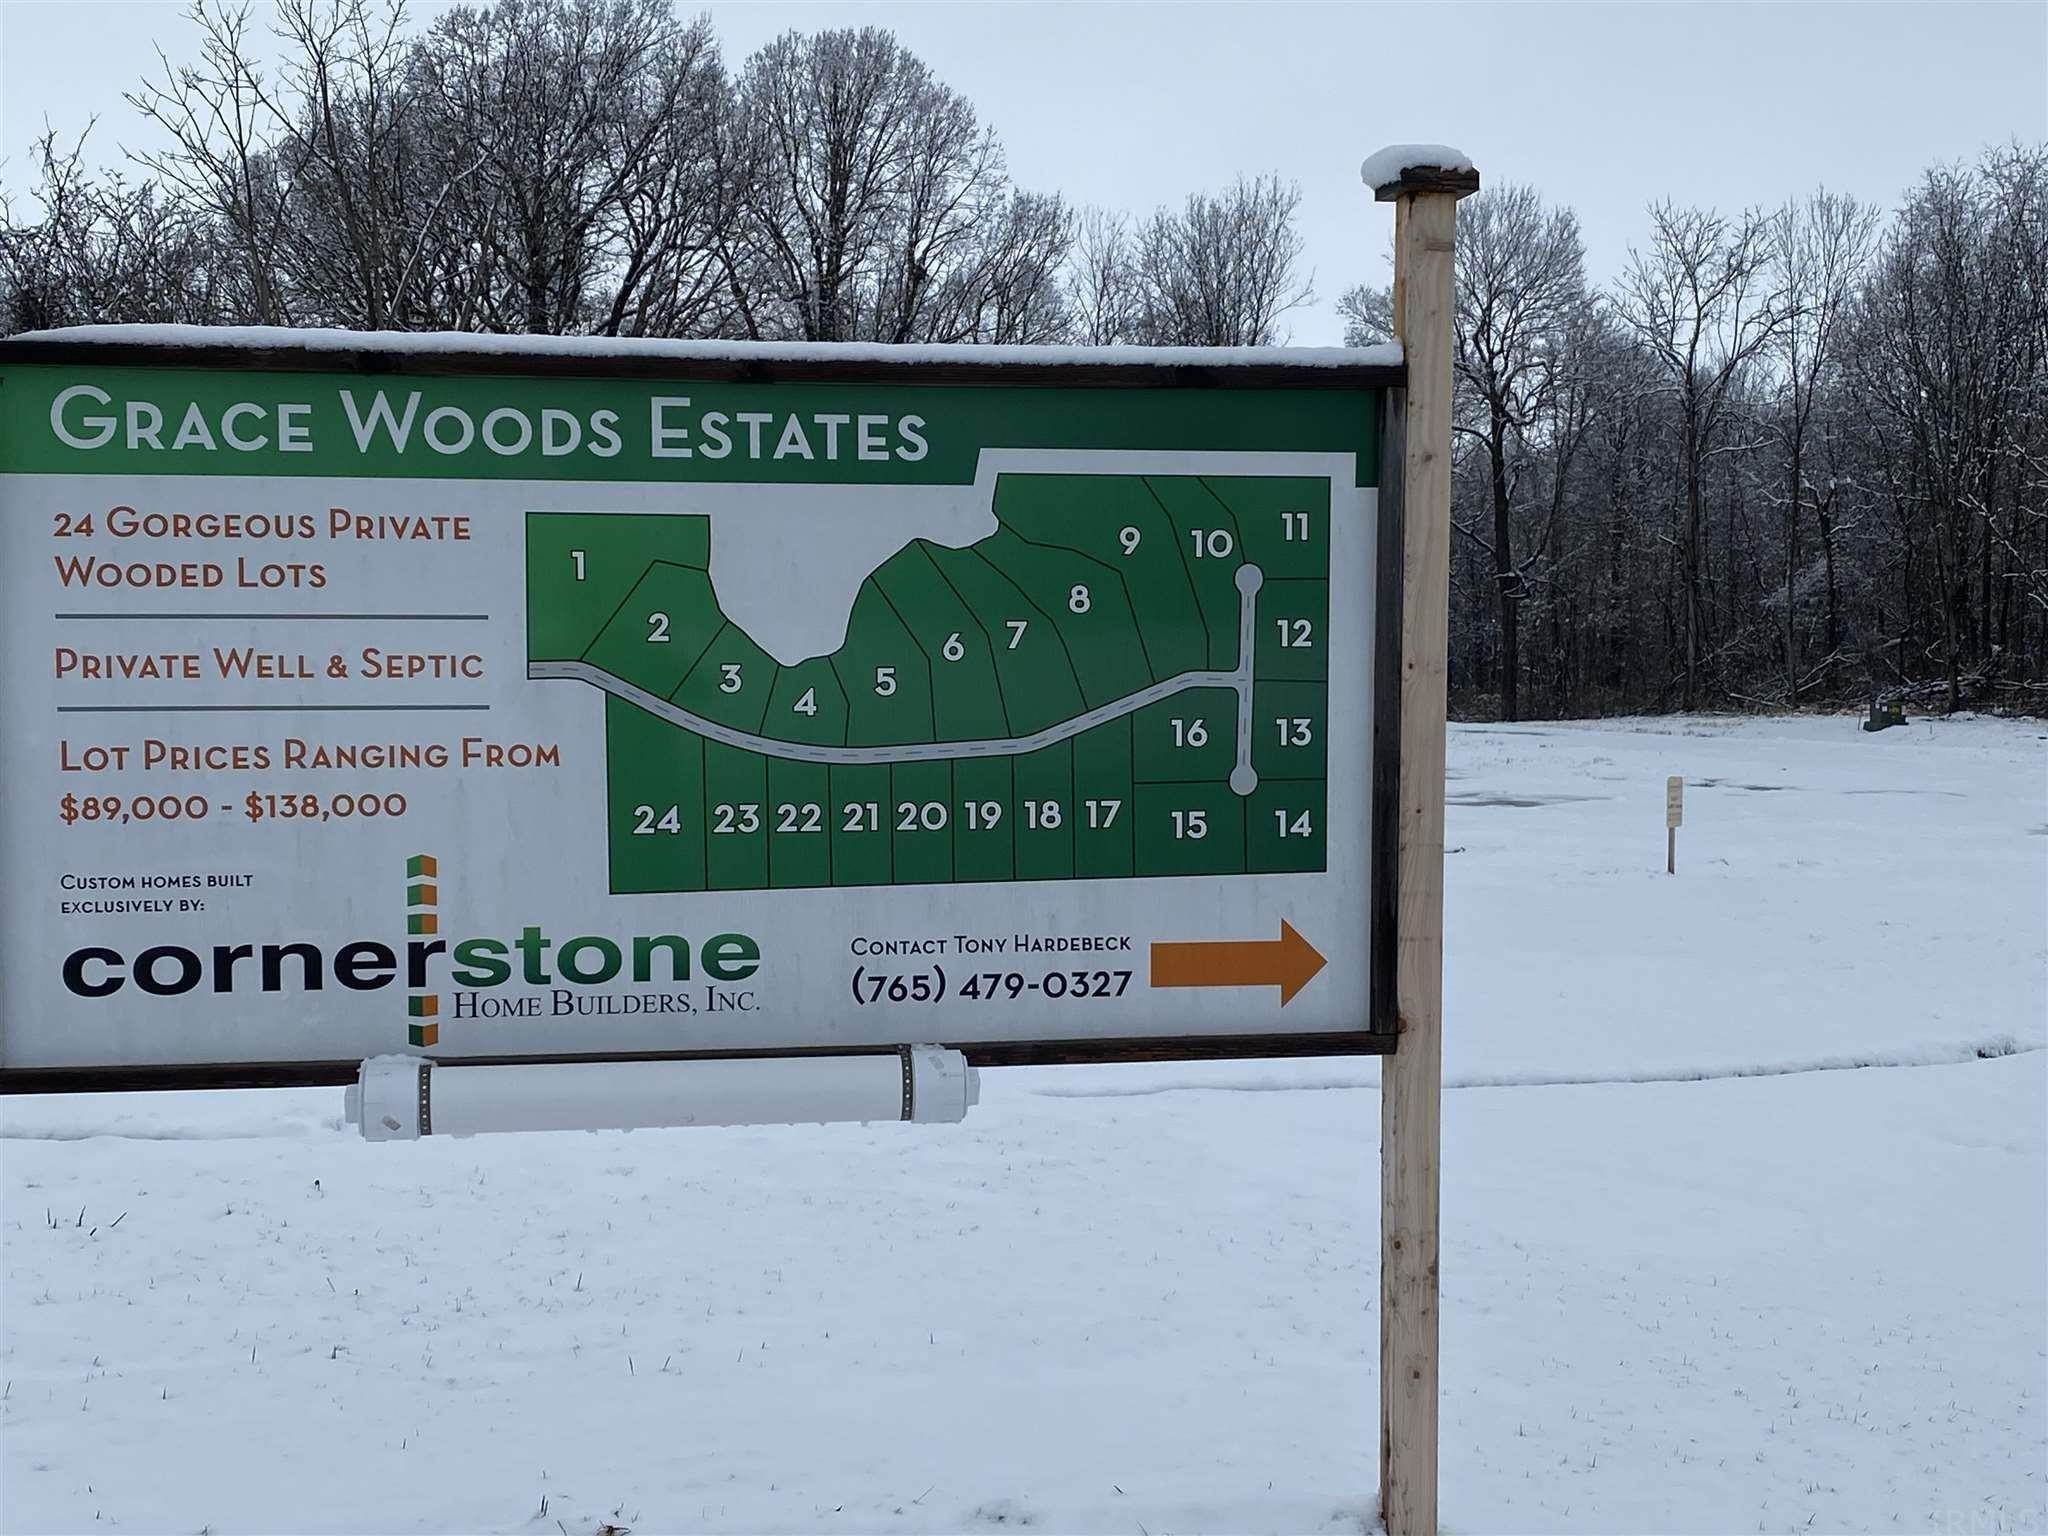 Residential Lots & Land for Sale at 9060 Herring Lane Battle Ground, Indiana 47920 United States